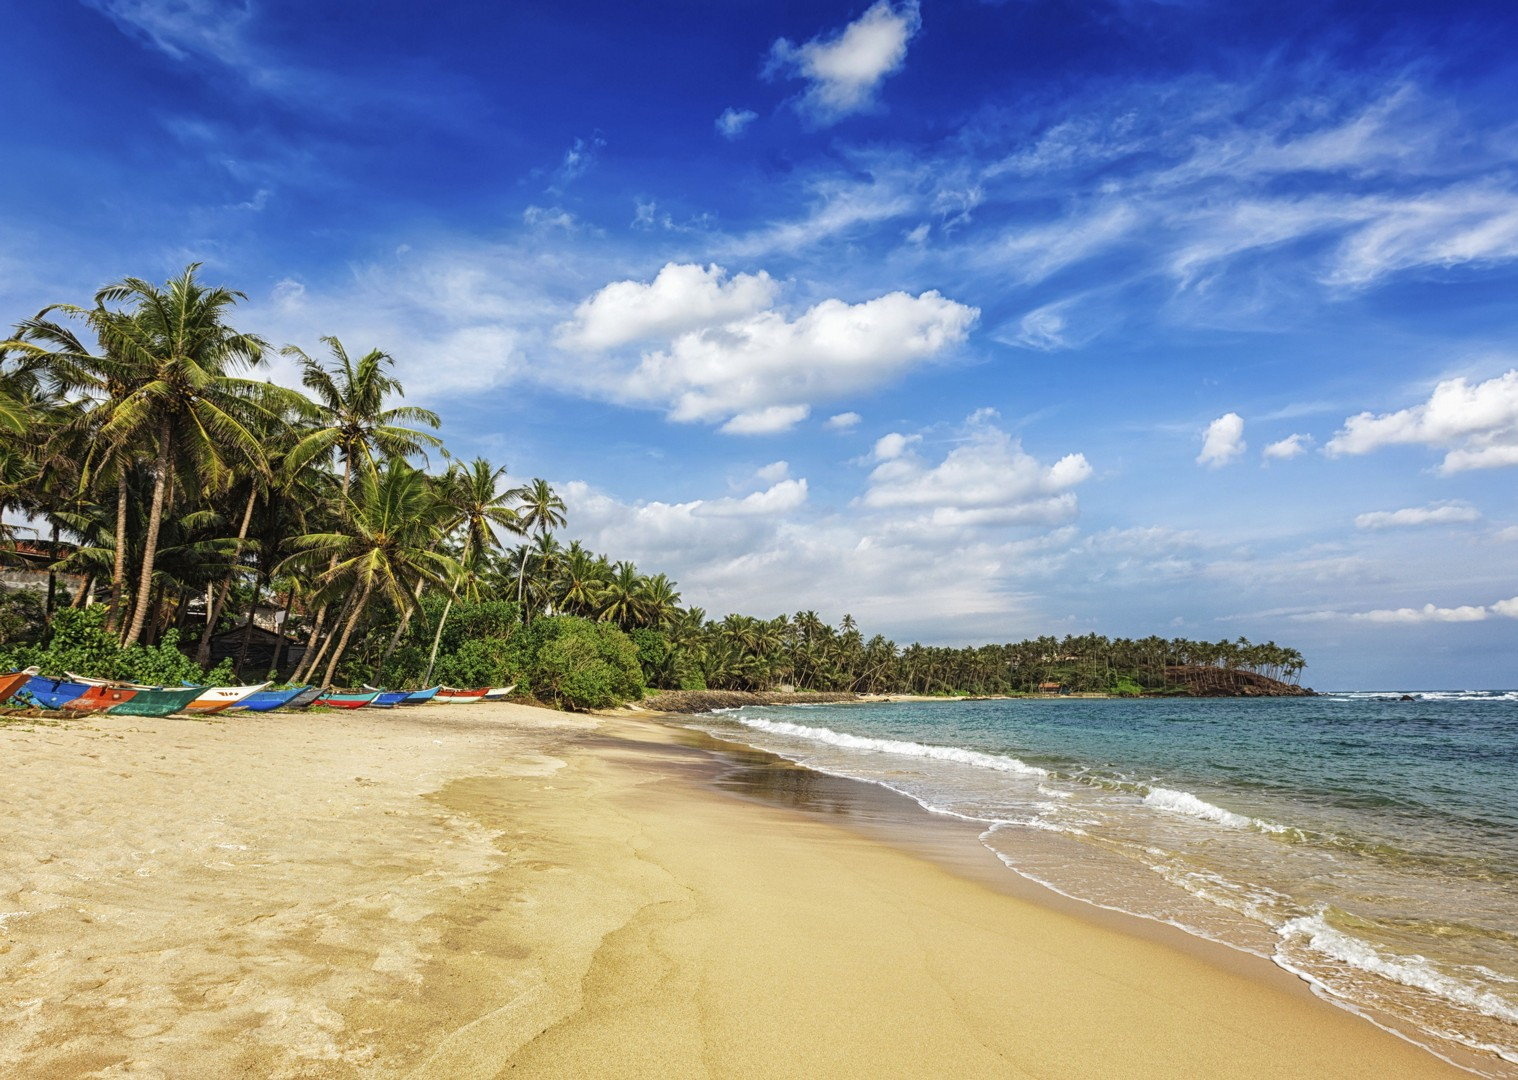 beaches-and-coast-cycling-holiday-sri-lanka.jpg - Sri Lanka - Backroads and Beaches - Cycling Adventures